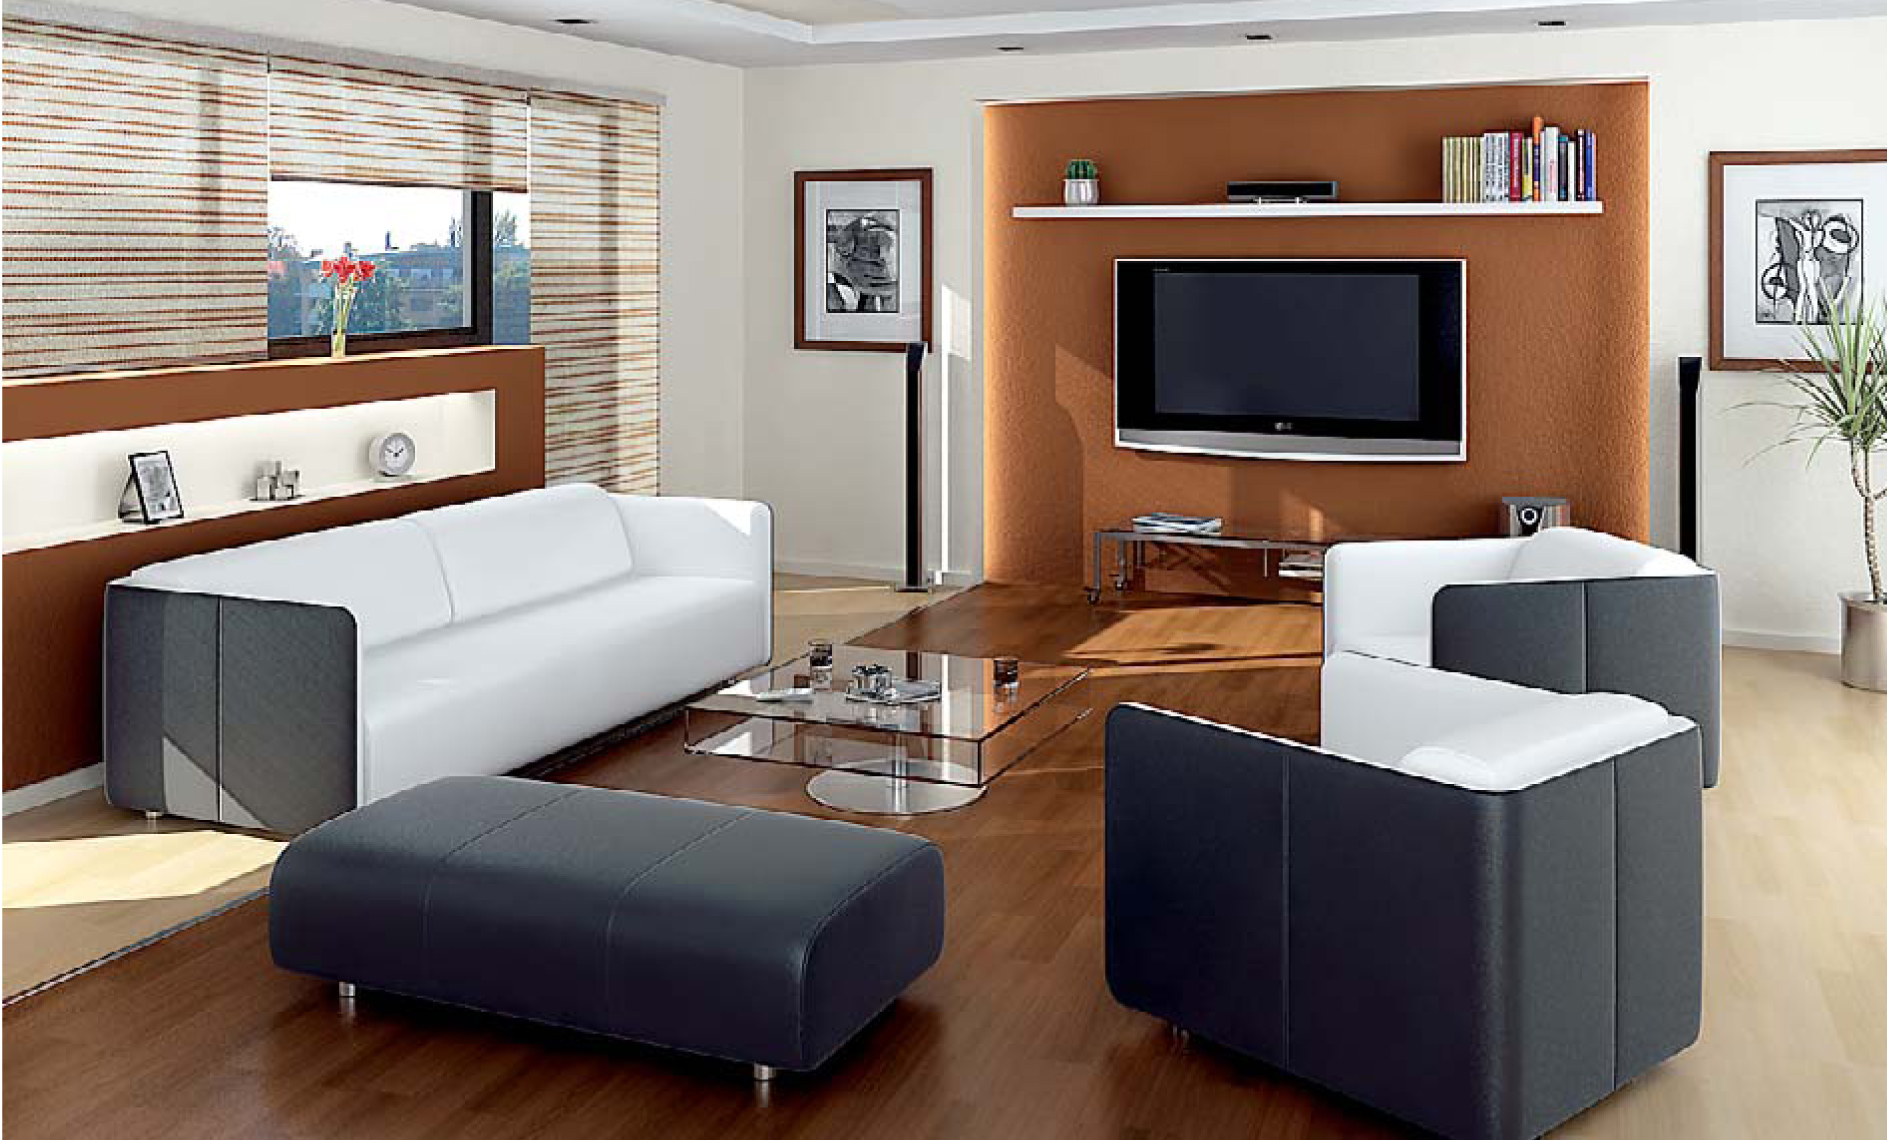 Image gallery ev dizayni for Home dizayn pictures